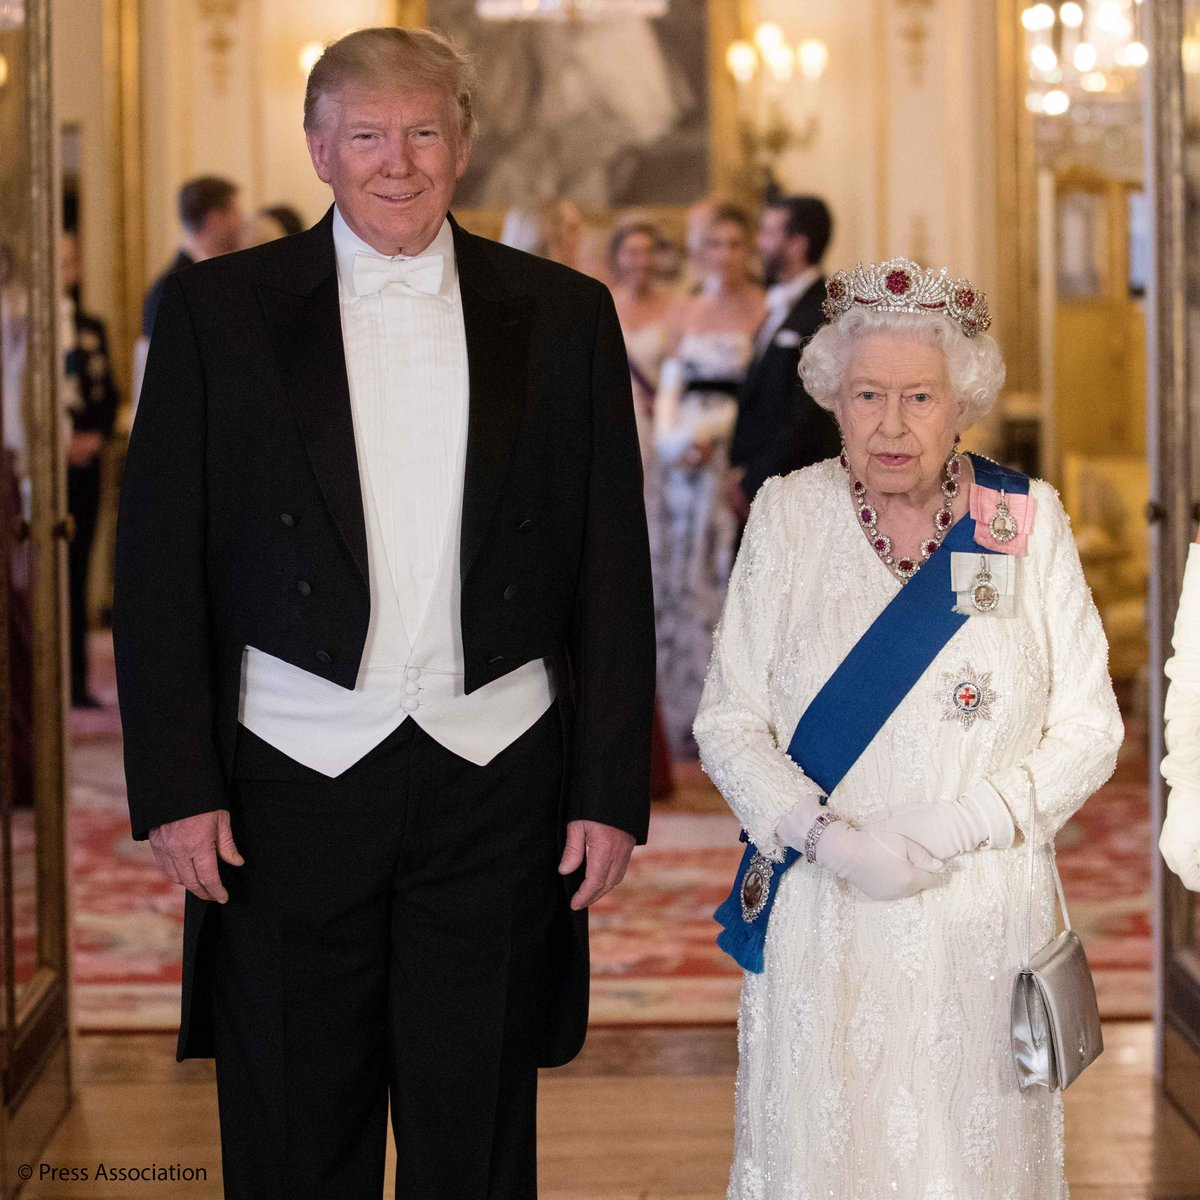 """The Royal Family on Twitter: """"'Mr President, as we look to the future, I am  confident that our common values and shared interests will continue to  unite us.' In her speech, The"""